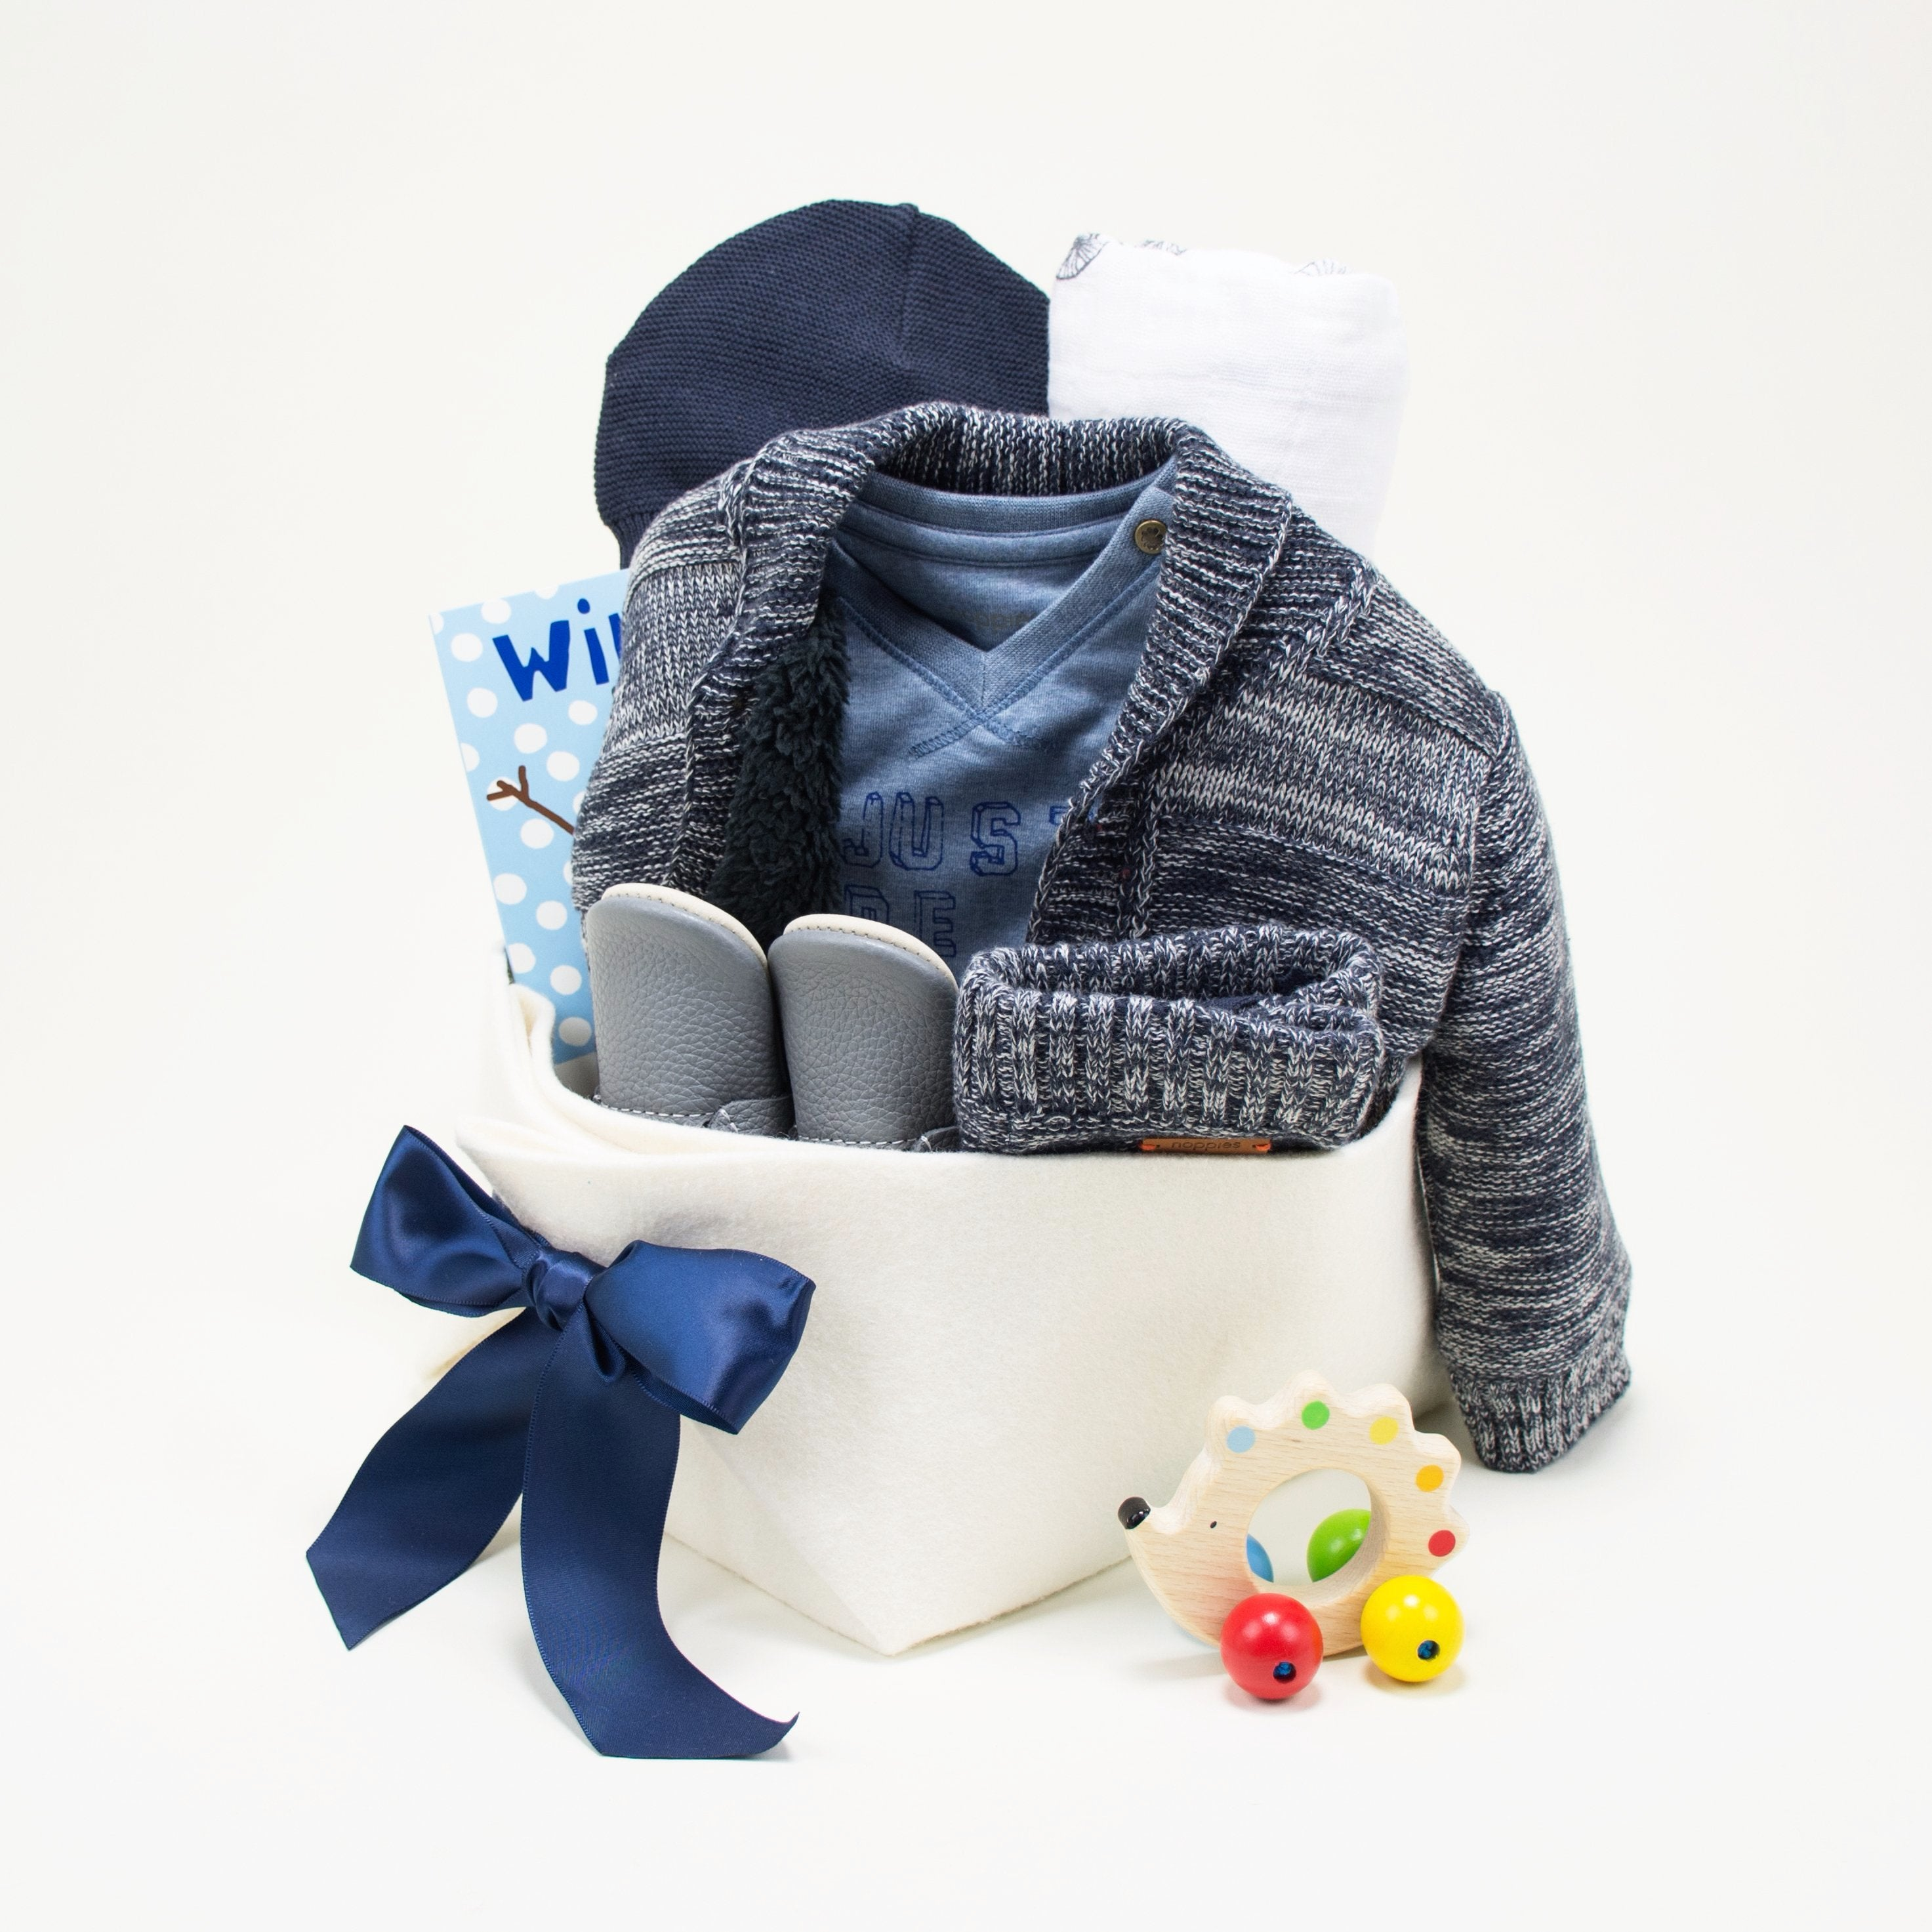 Luxury Baby Boy Gift at Bonjour Baby Baskets